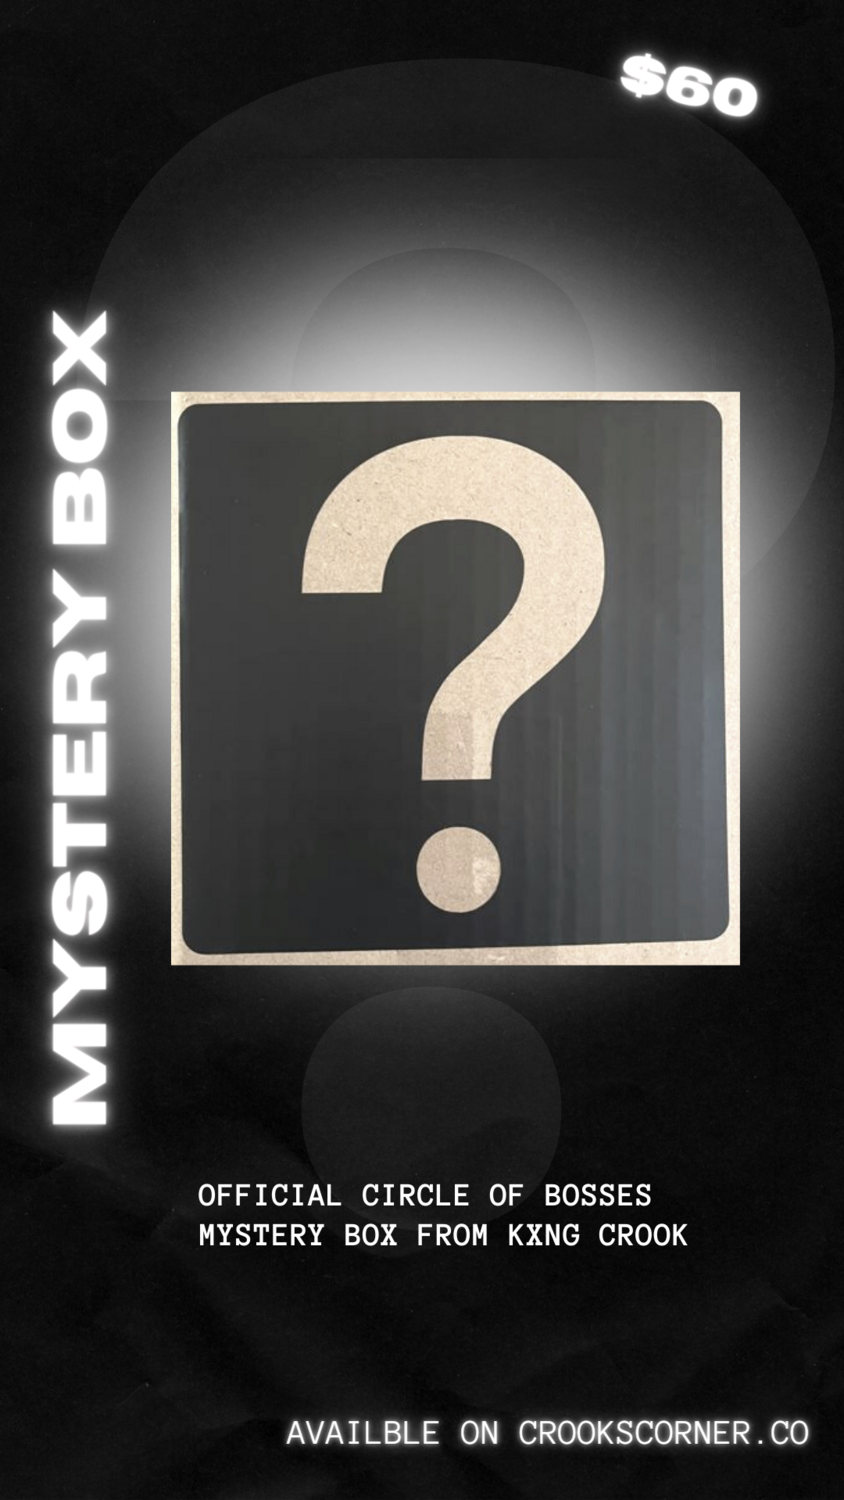 CIRCLE OF BOSSES - LIMITED MYSTERY BOX